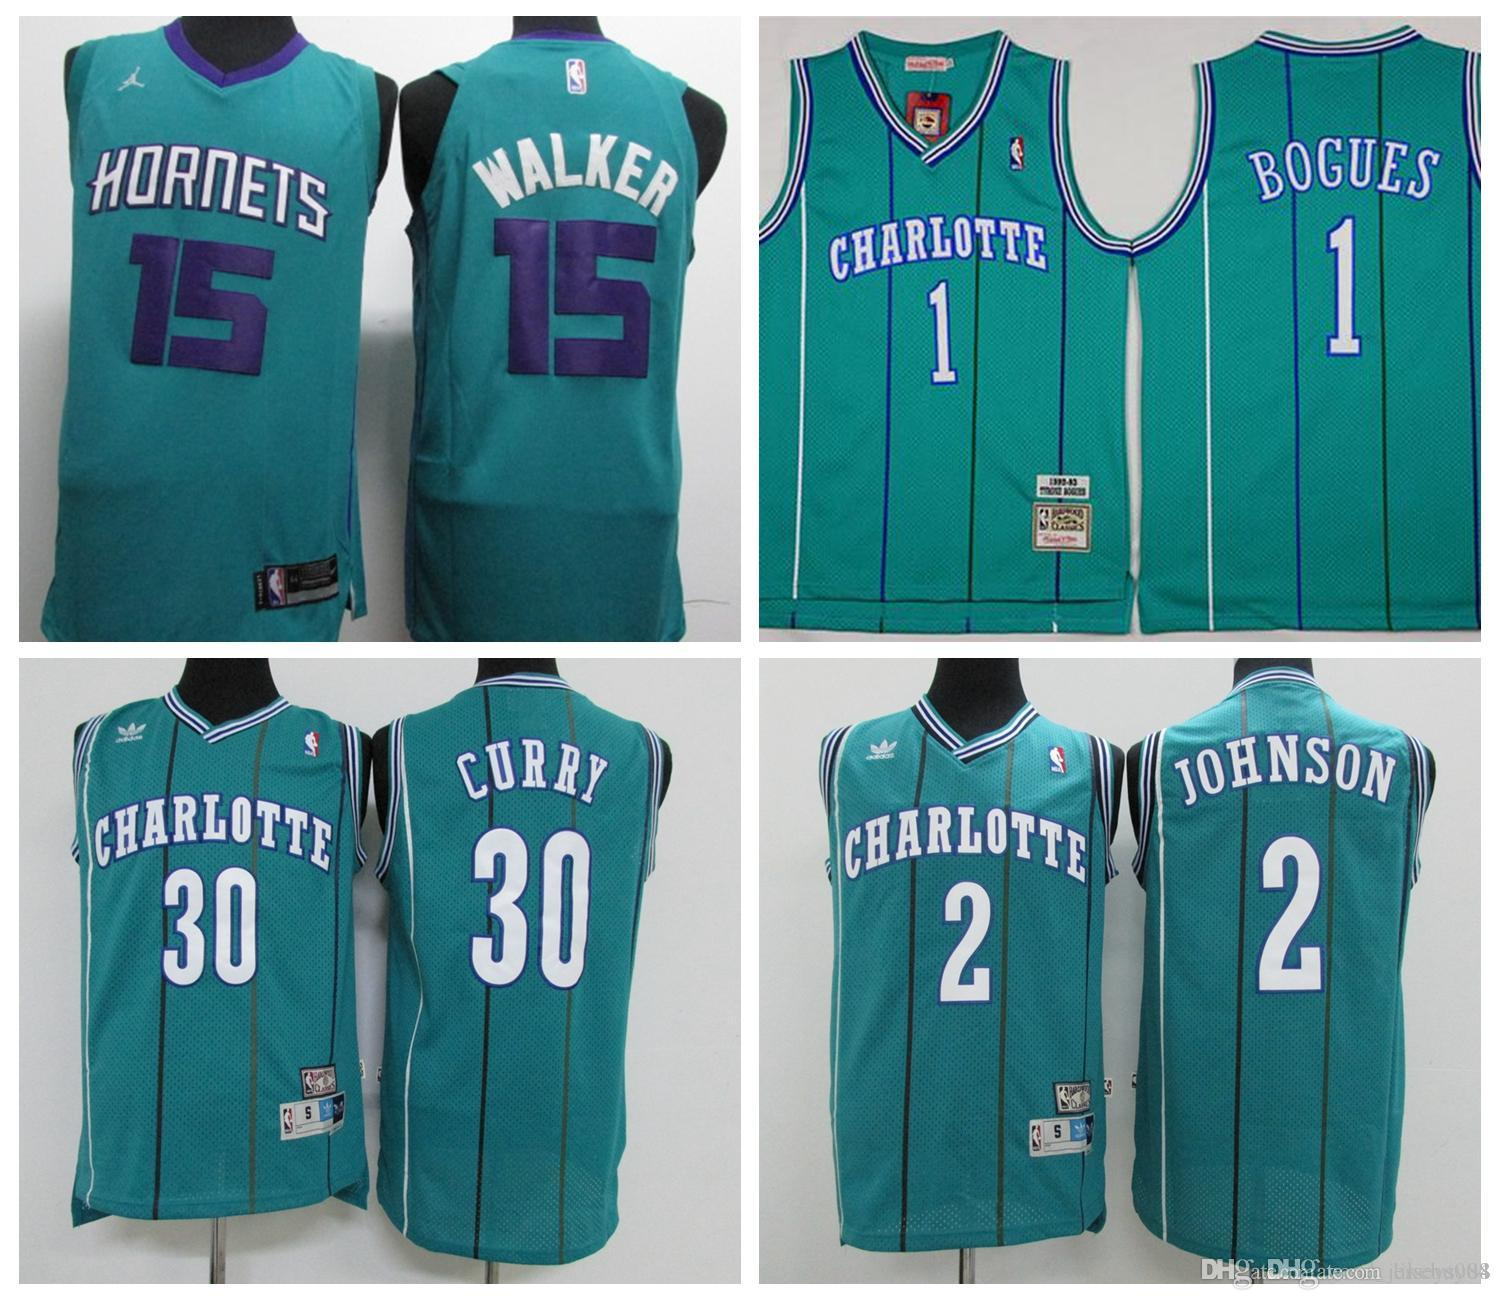 5e3f3ce79 2019 Retro 2019 Charlotte Basketball Hornets Jersey 15 Kemba Walker 1  Tyrone Muggsy Bogues 30 Dell Curry Stitched Basketball Jerseys From  Goodidea007, ...